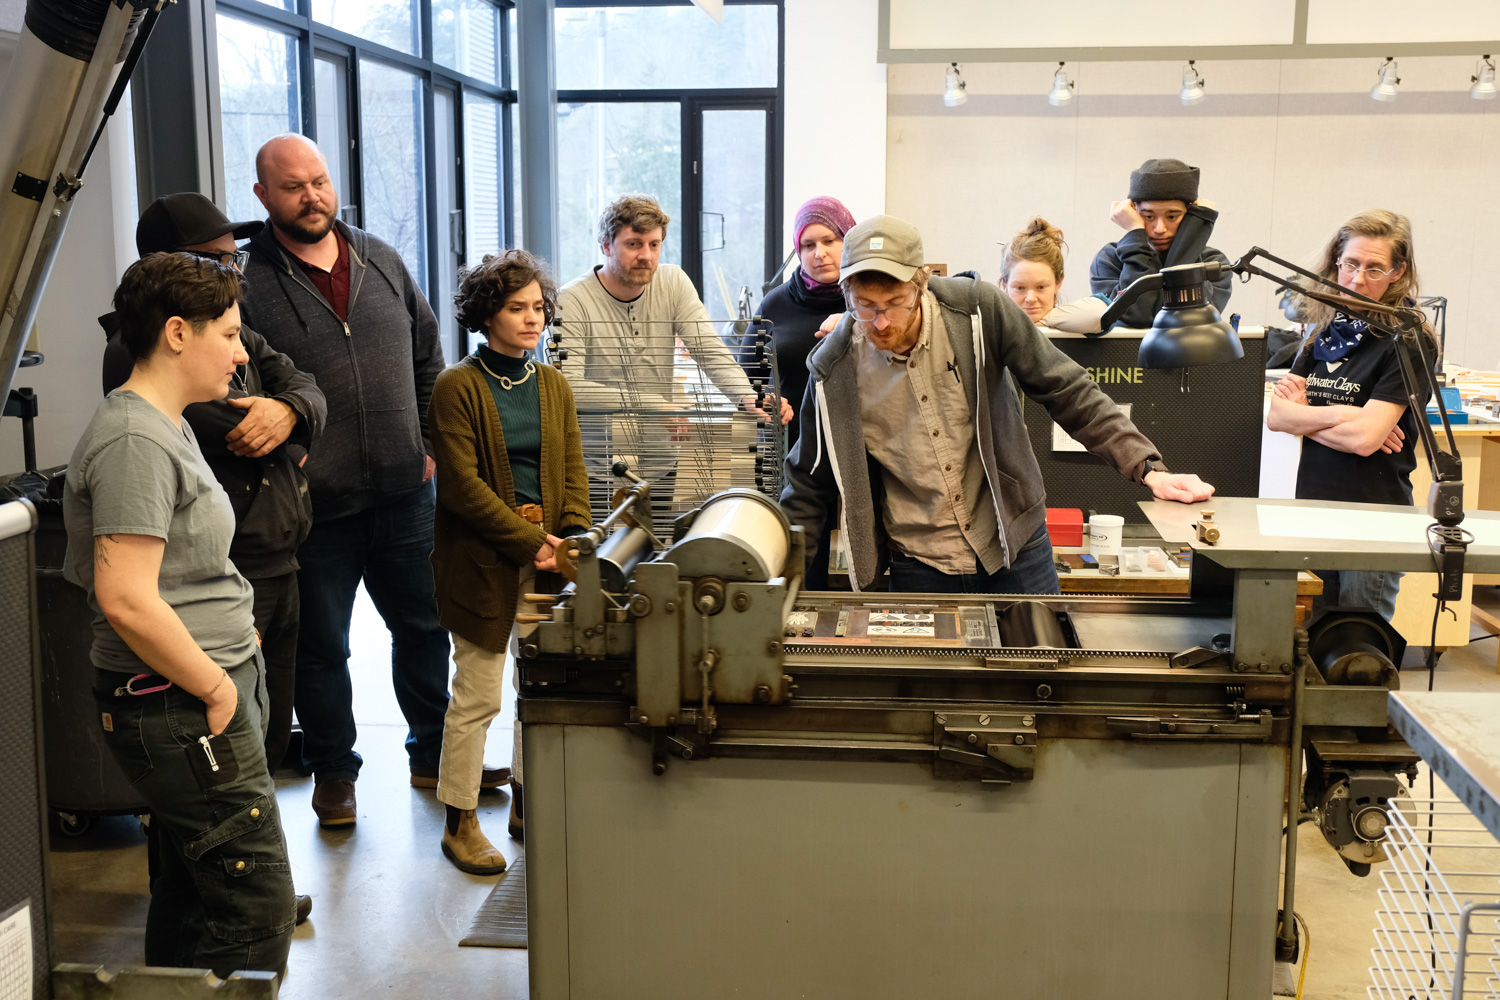 Adam Leestma giving a letterpress demonstration